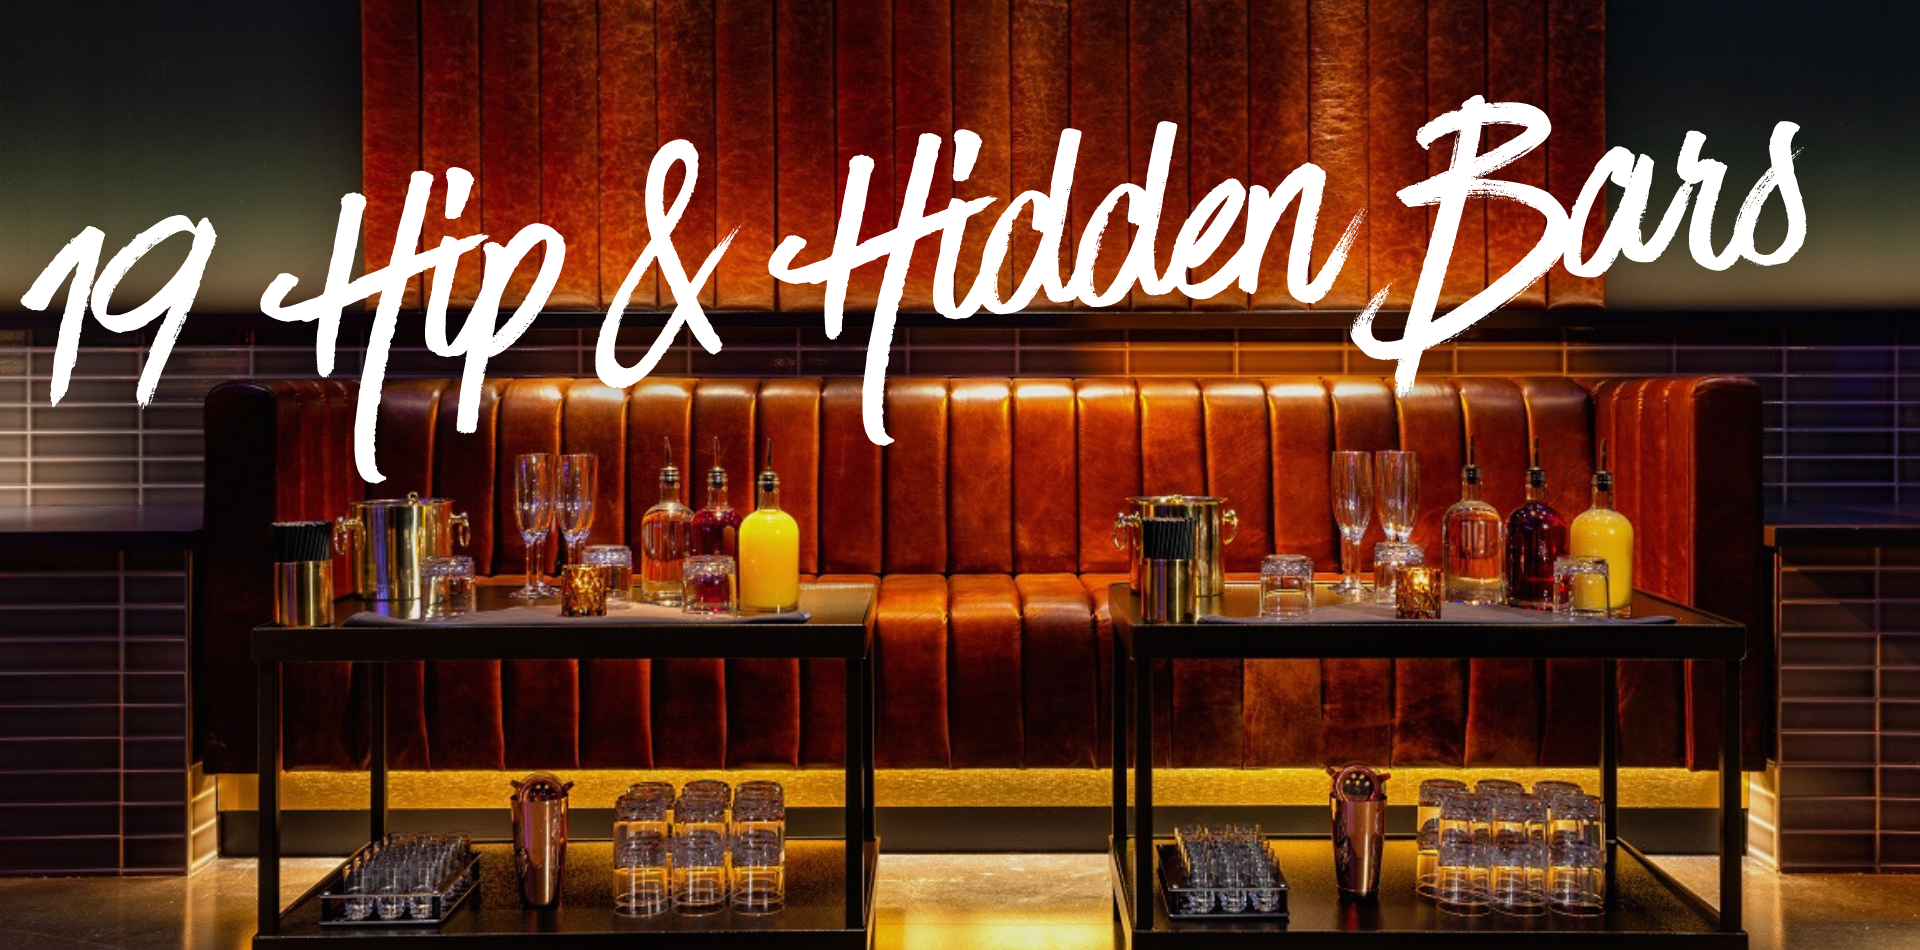 19 Hip & Hidden Bars to Visit in Nashville